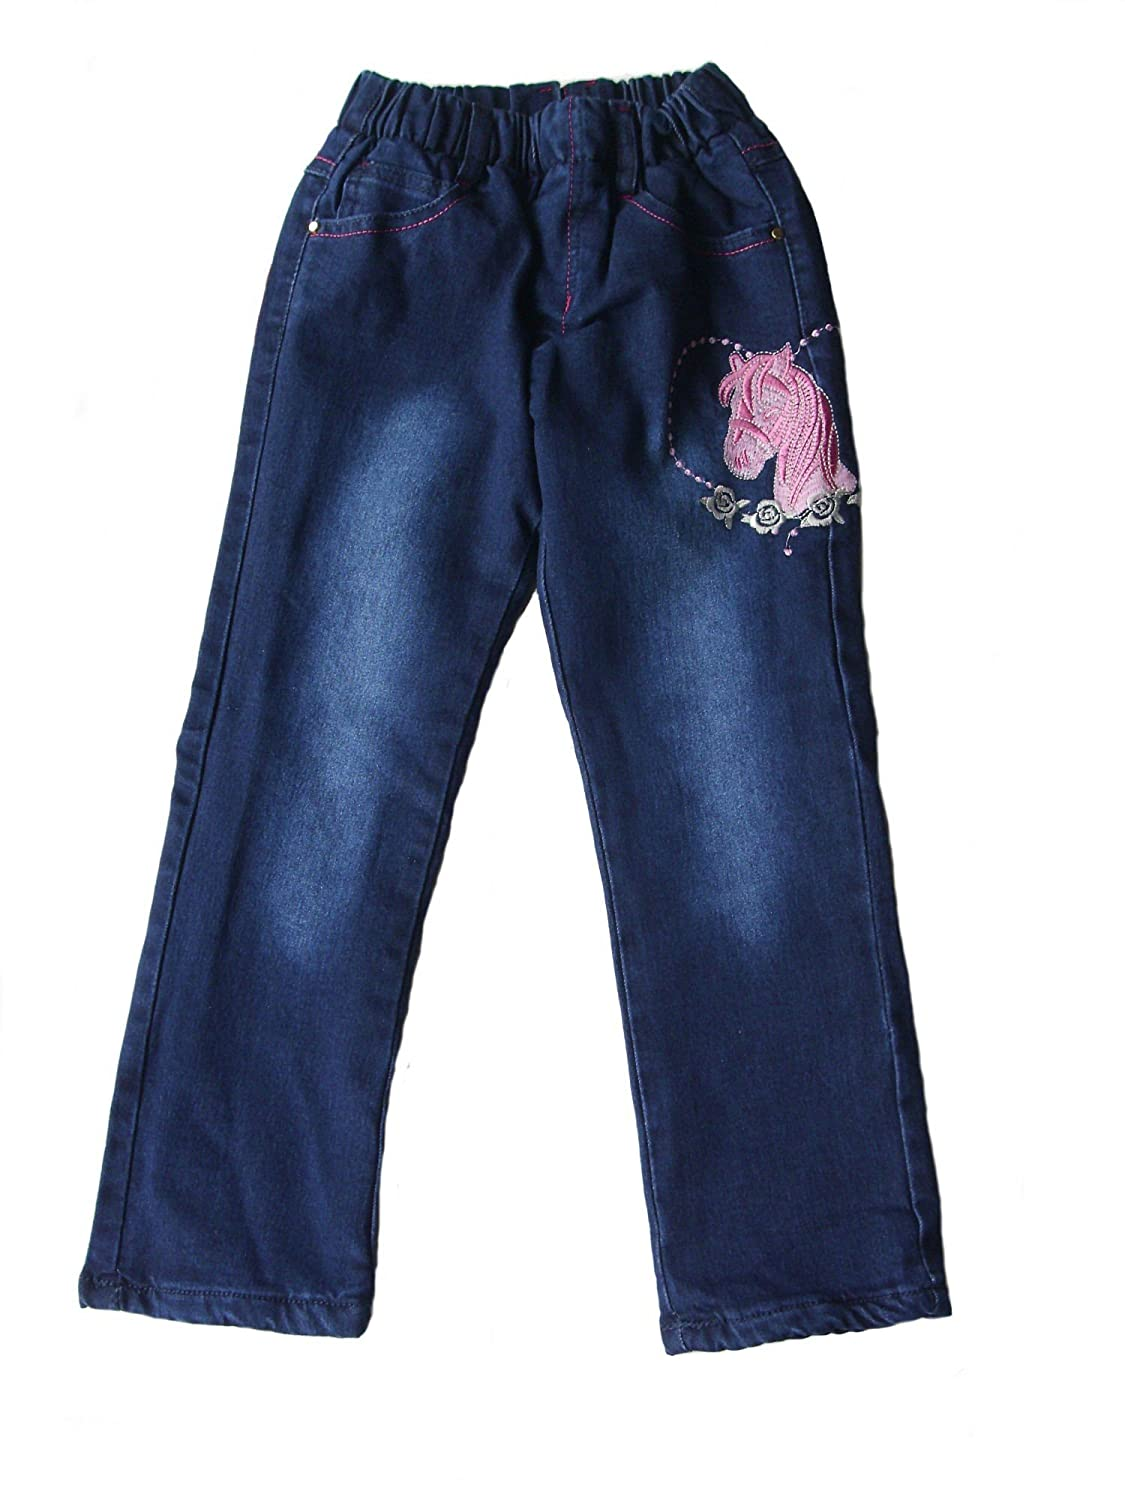 Kinder Mädchen Thermo Jeans, Thermojeans, Thermohose, gefüttert, mit Motiv, AM-KI-MAE-Jeans-Thermo-MH06-bl